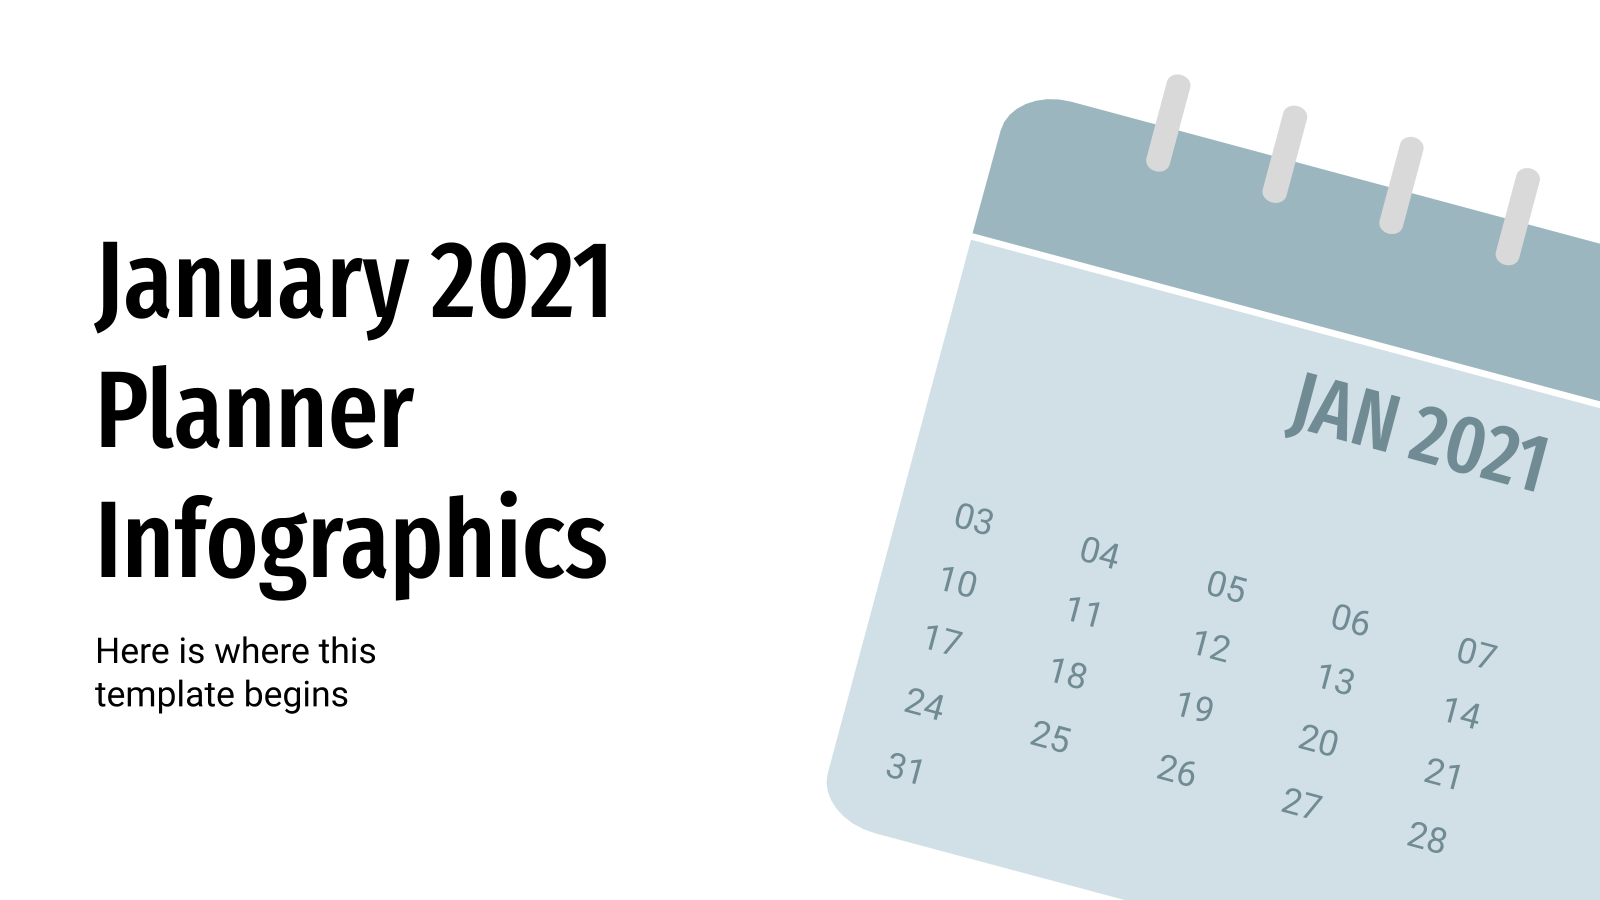 January 2021 Planner Infographics presentation template